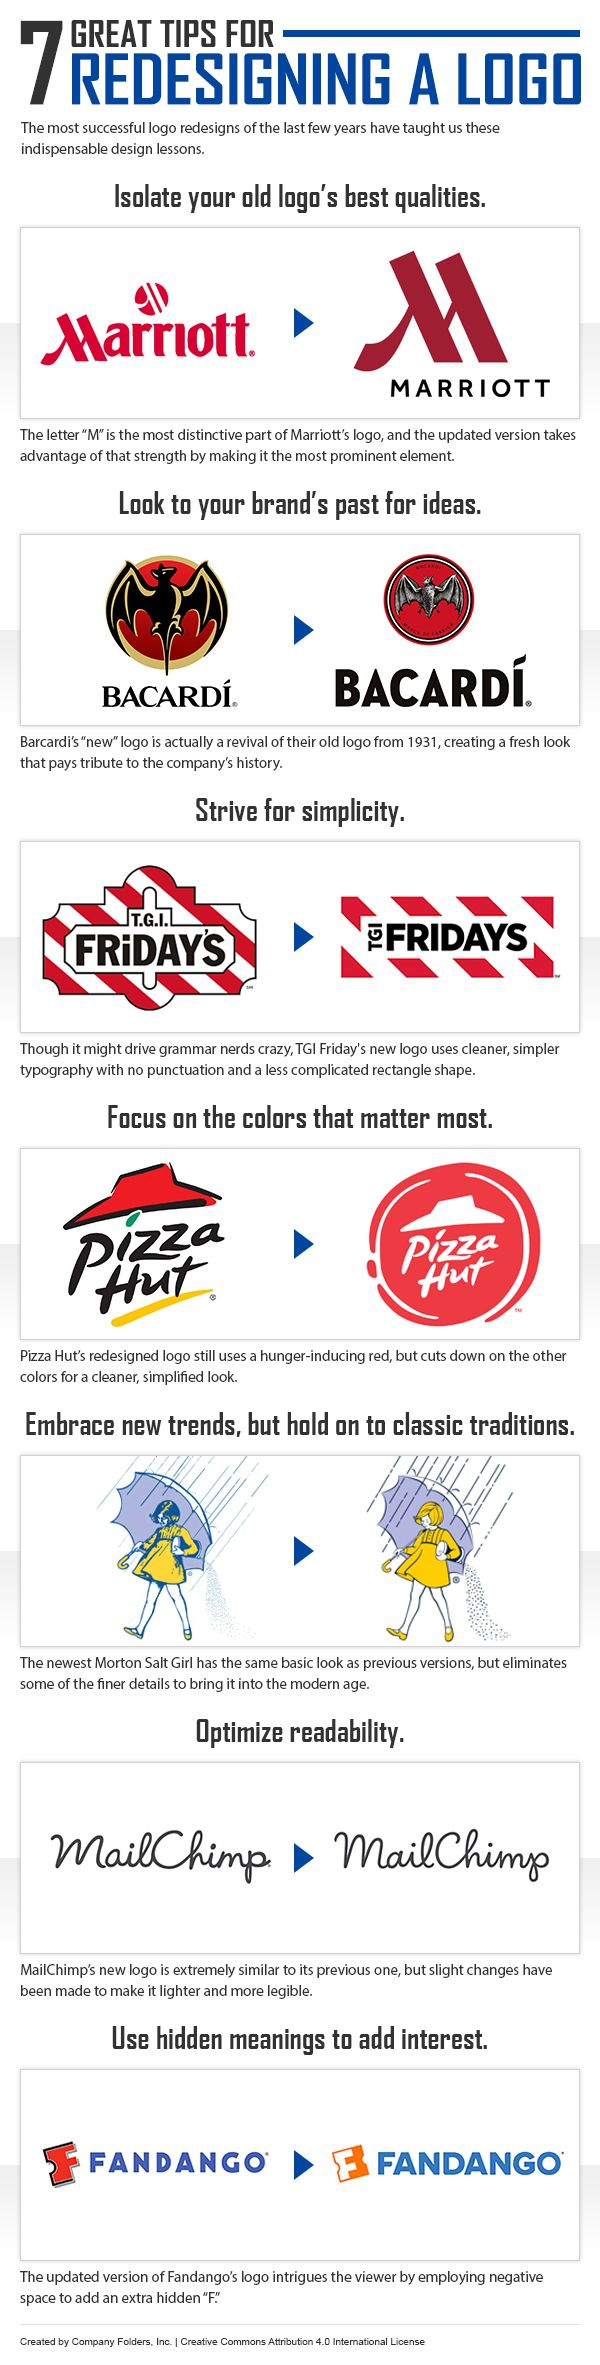 Logo redesign tips #DESIGN #MARKETING